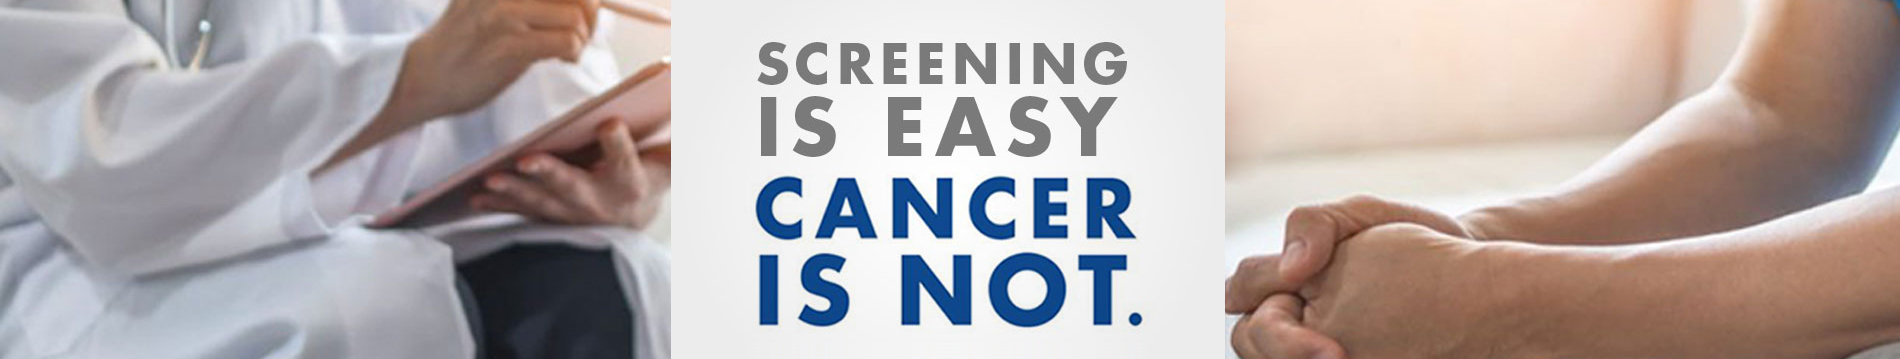 Screening is Easy. Cancer is Not. Schedule your colonoscopy today.